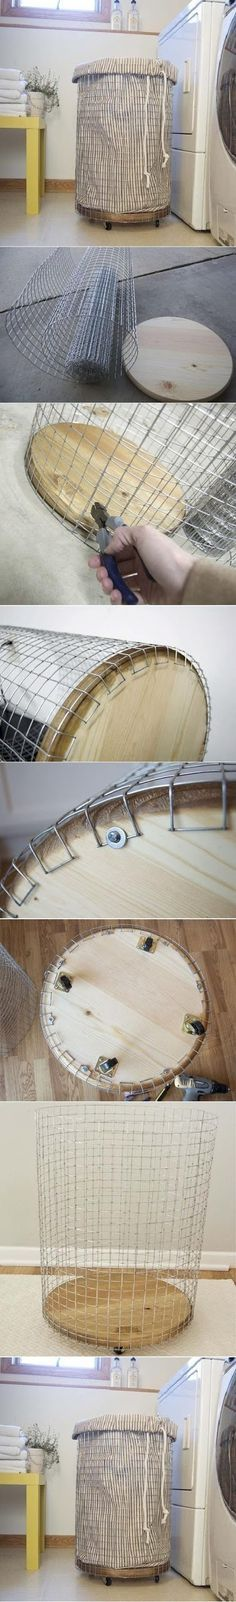 DIY How to make a French-Vintage-Inspired Wire Hamper - wow -cool!!! I think this is my favorite DIY ever!